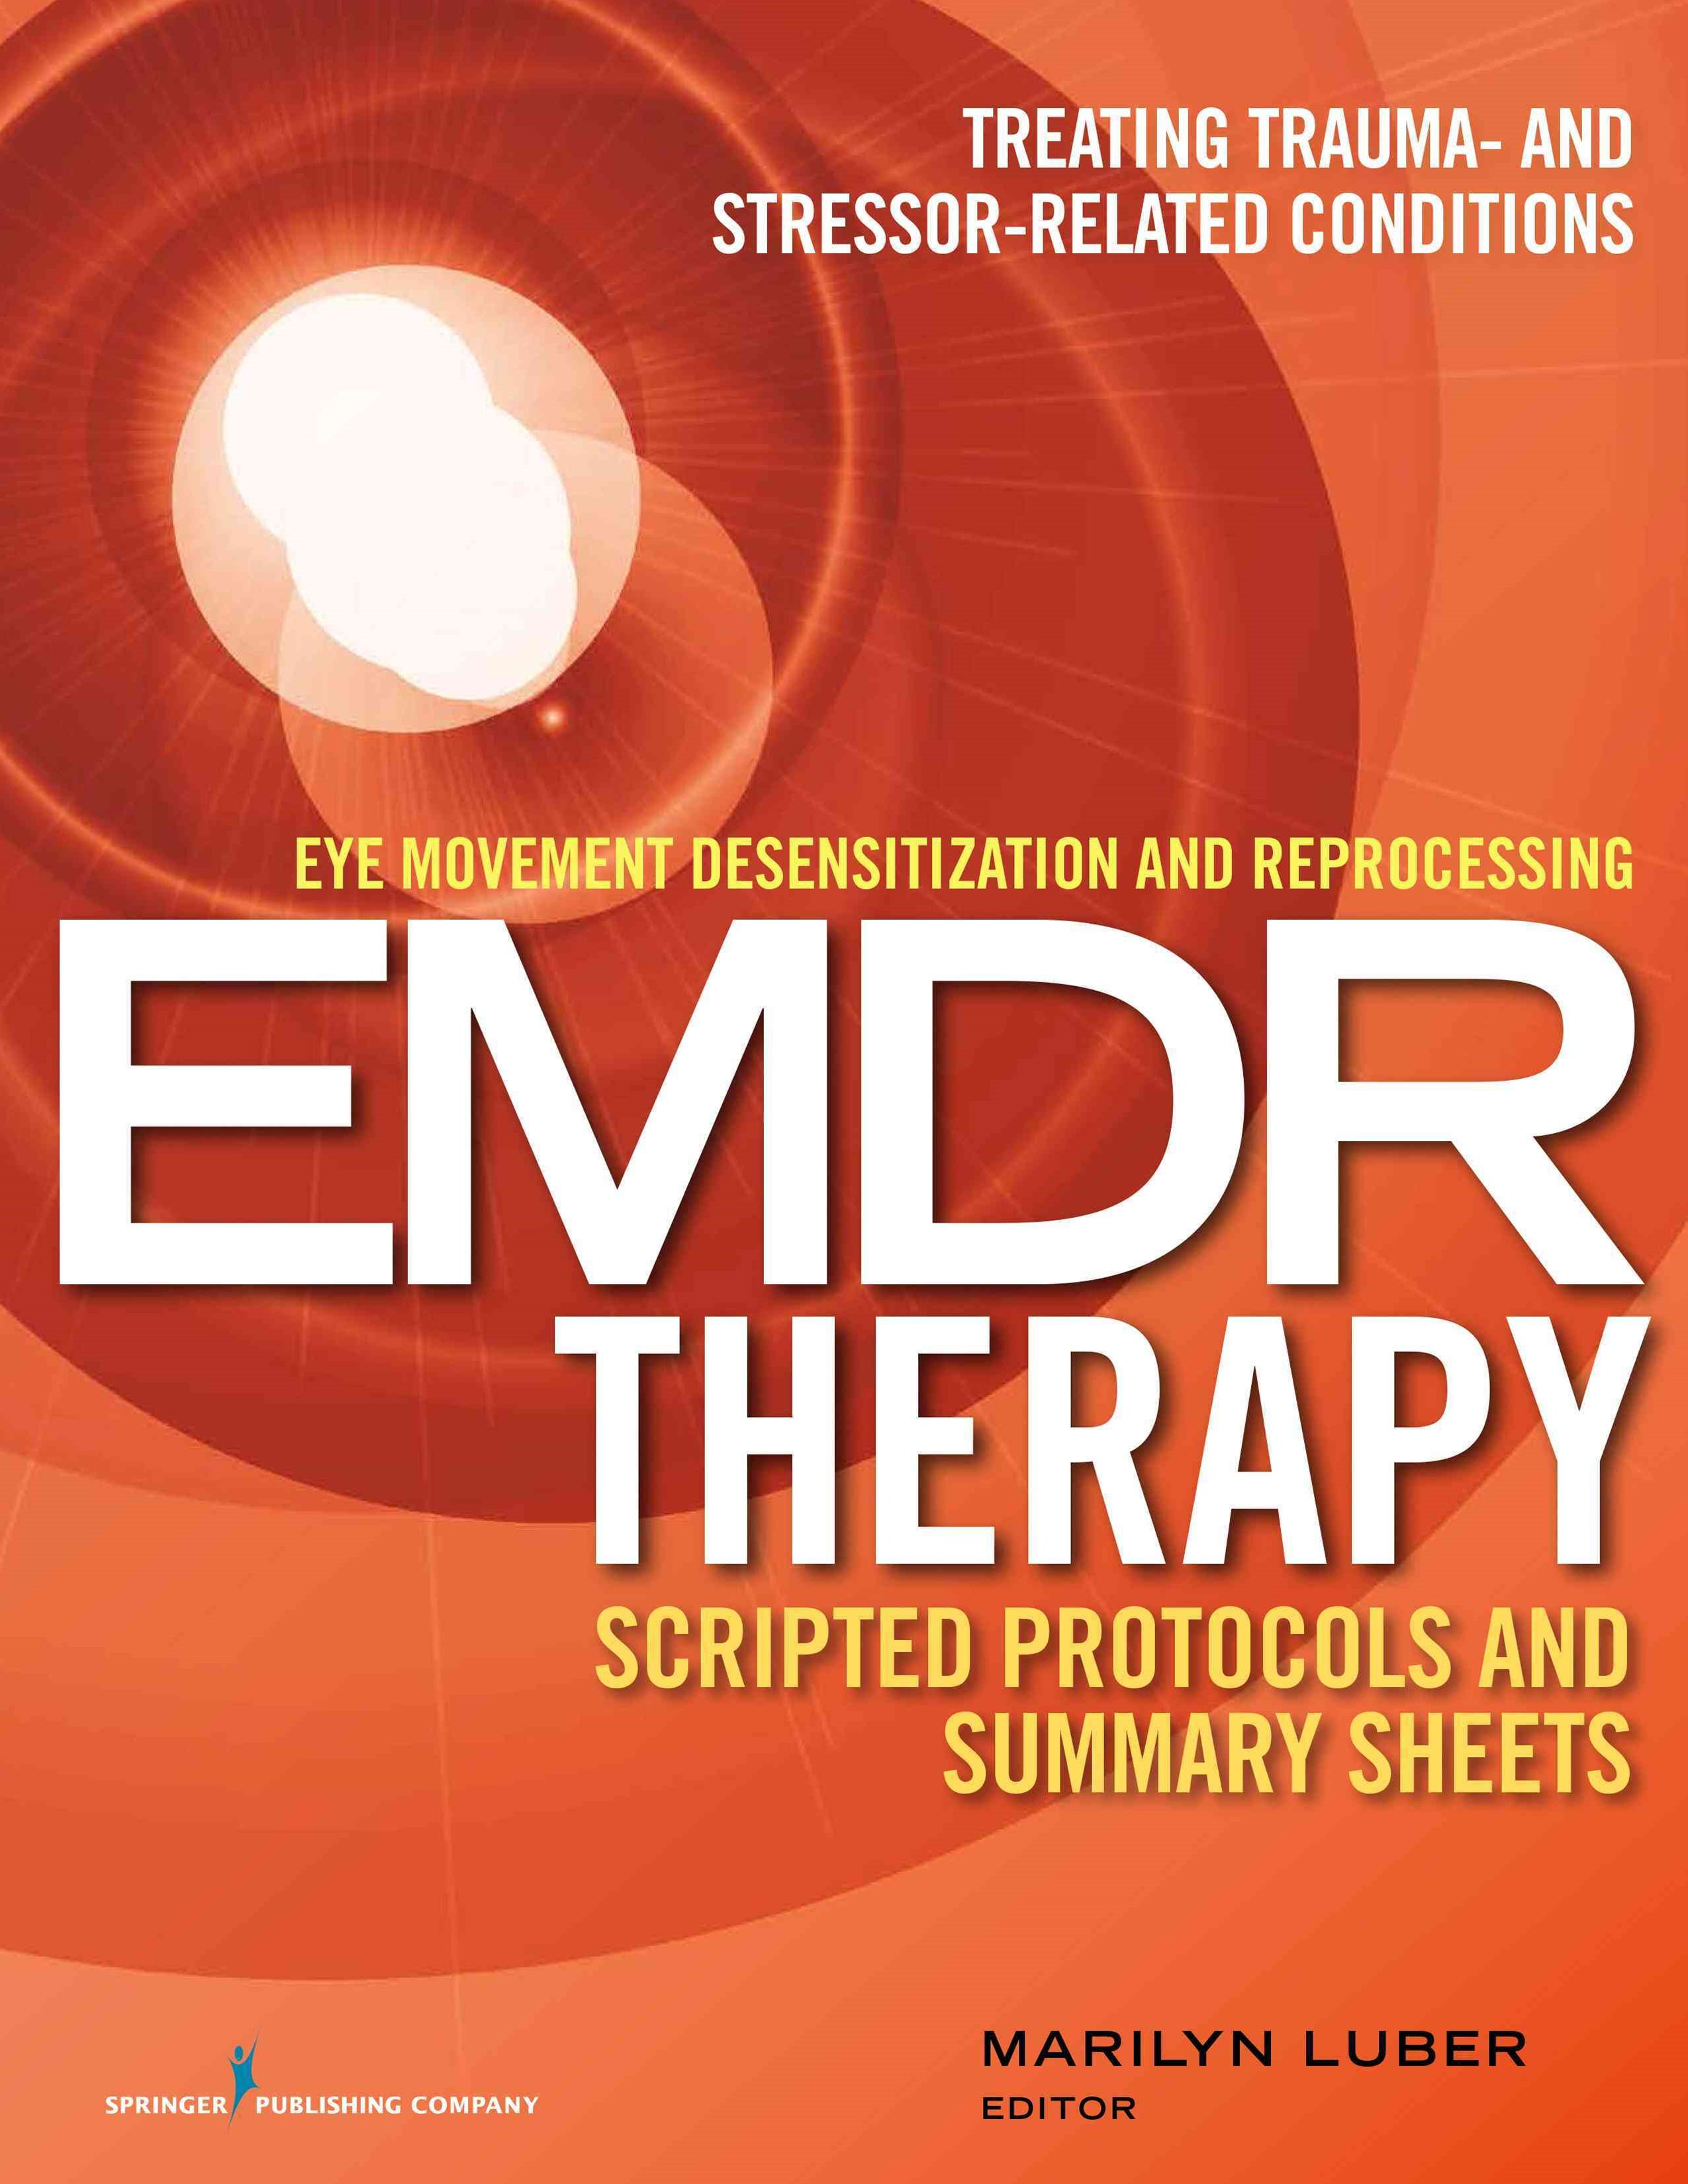 Eye Movement Desensitization and Reprocessing (EMDR) Therapy Scripted Protocols and Summary Sheets